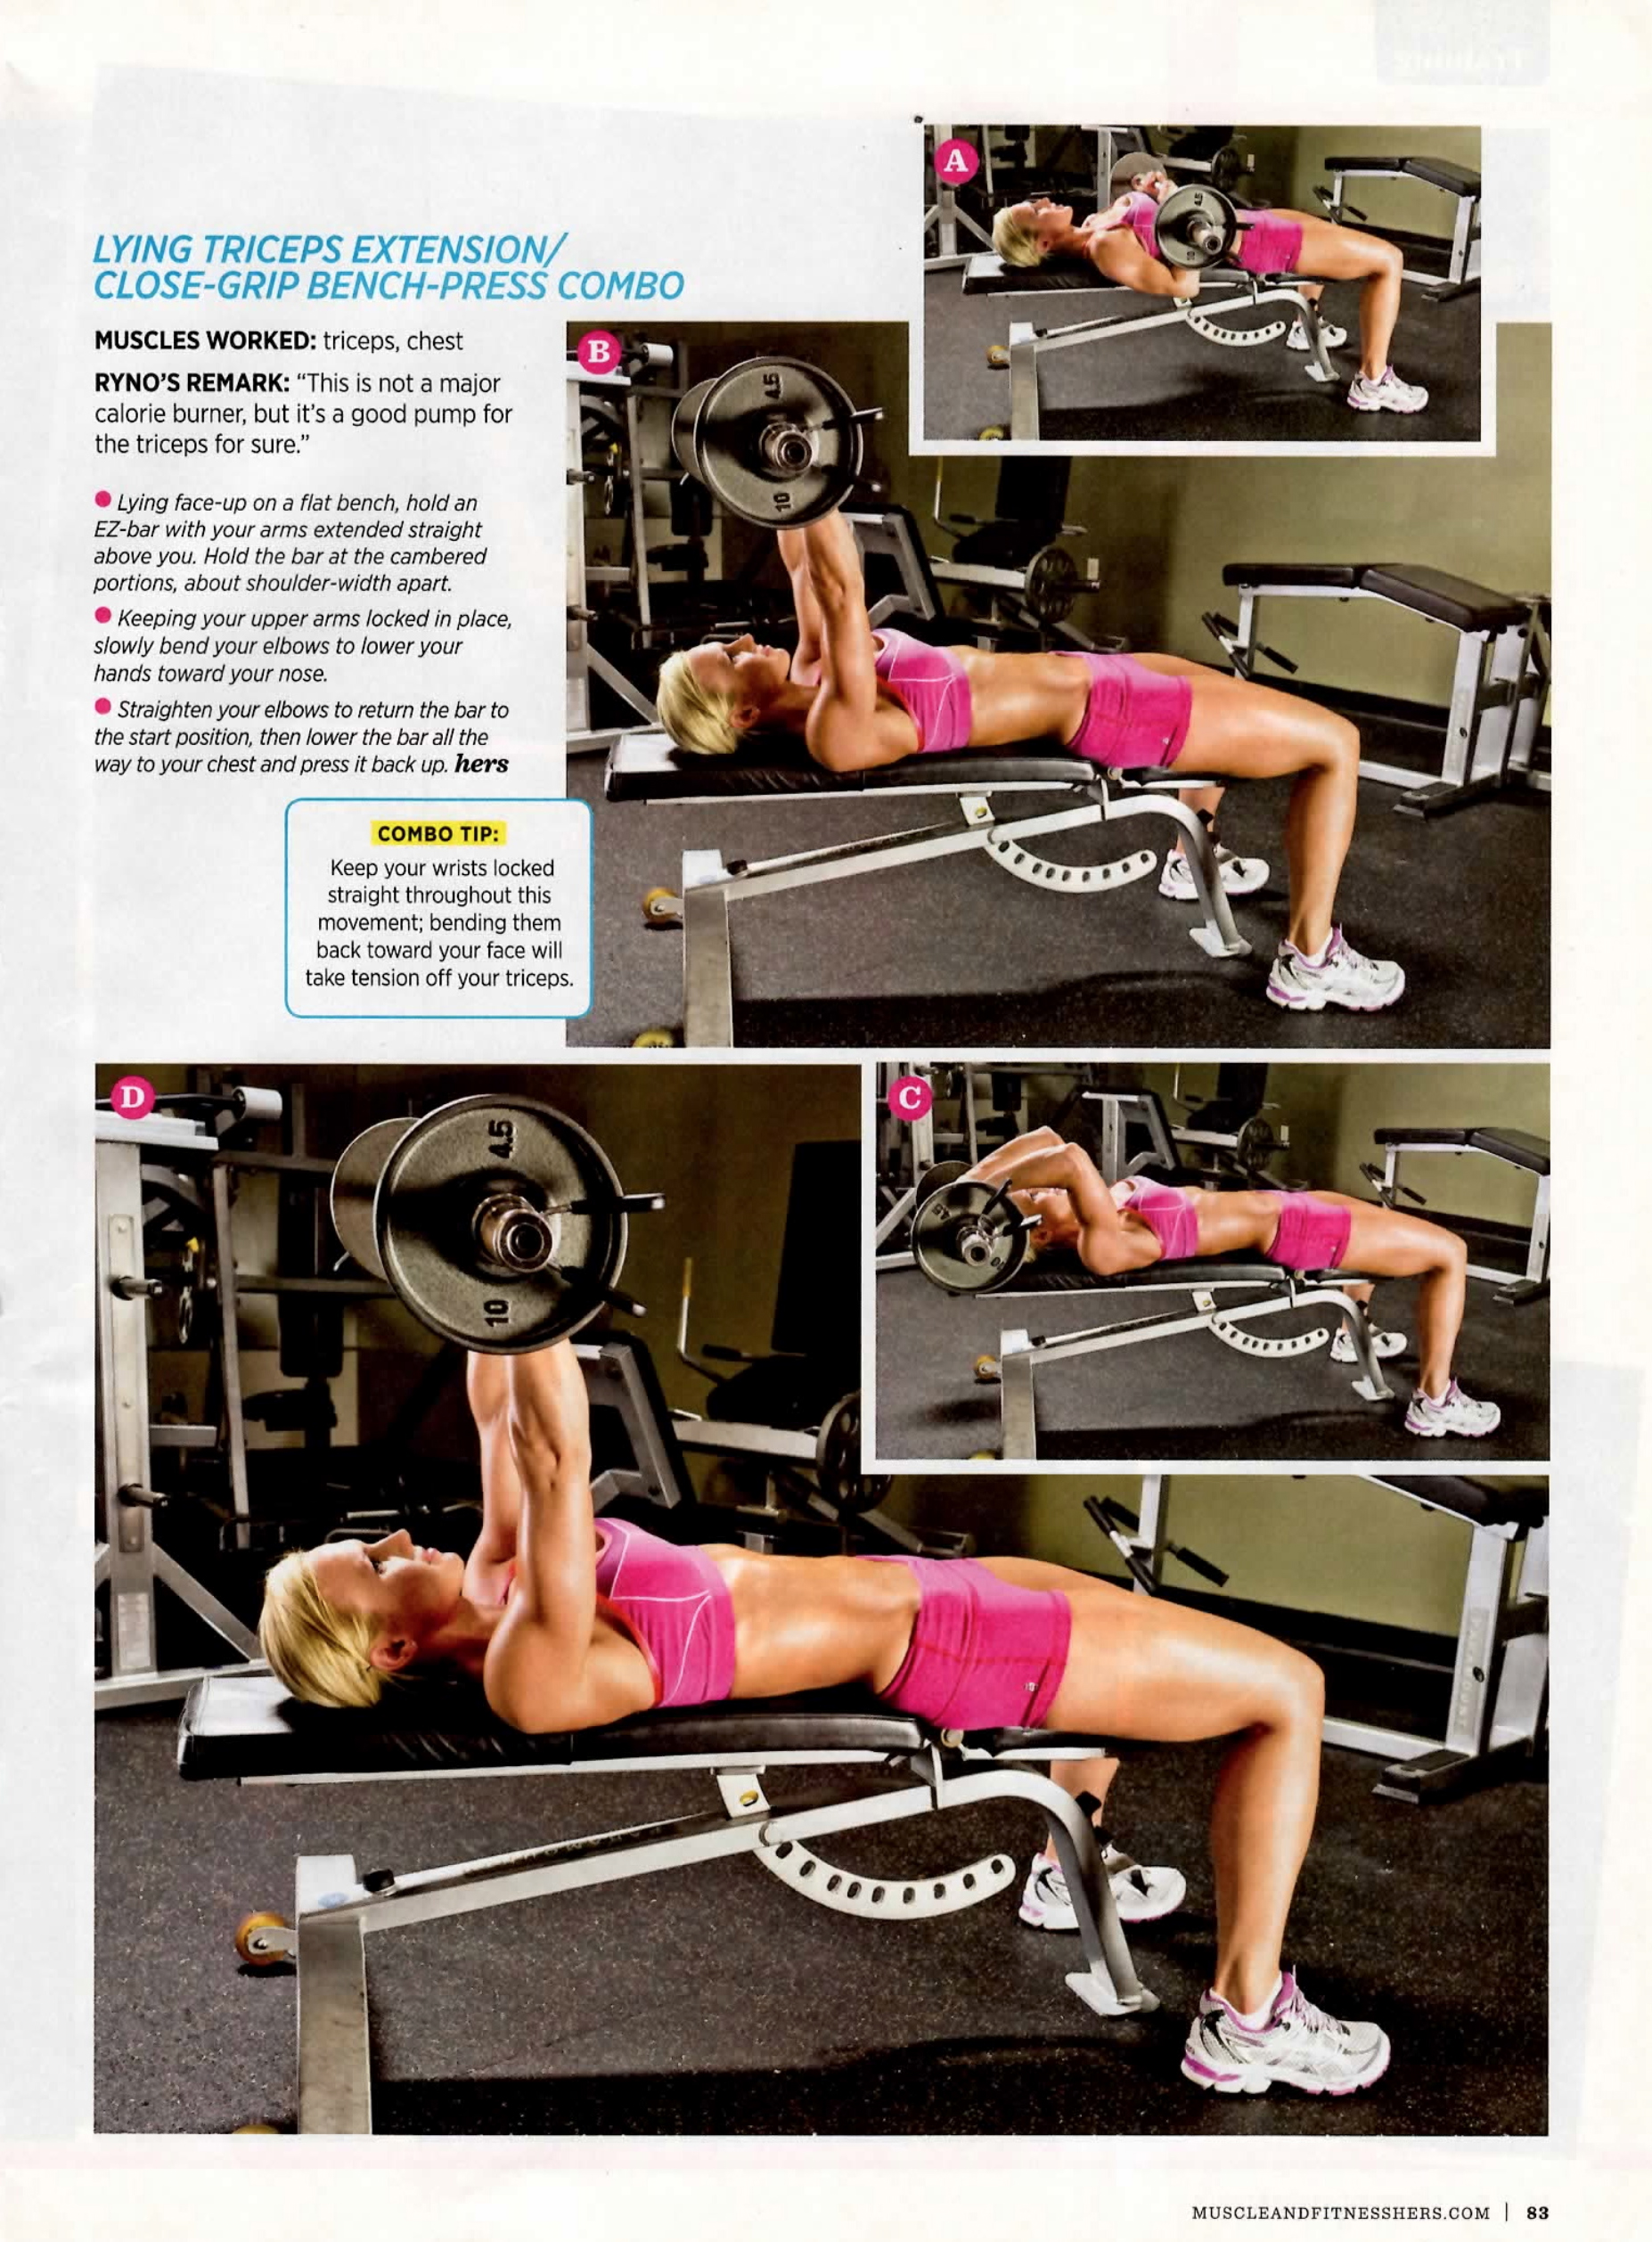 Jim Ryno Muscle and Fitness Hers 5.jpg